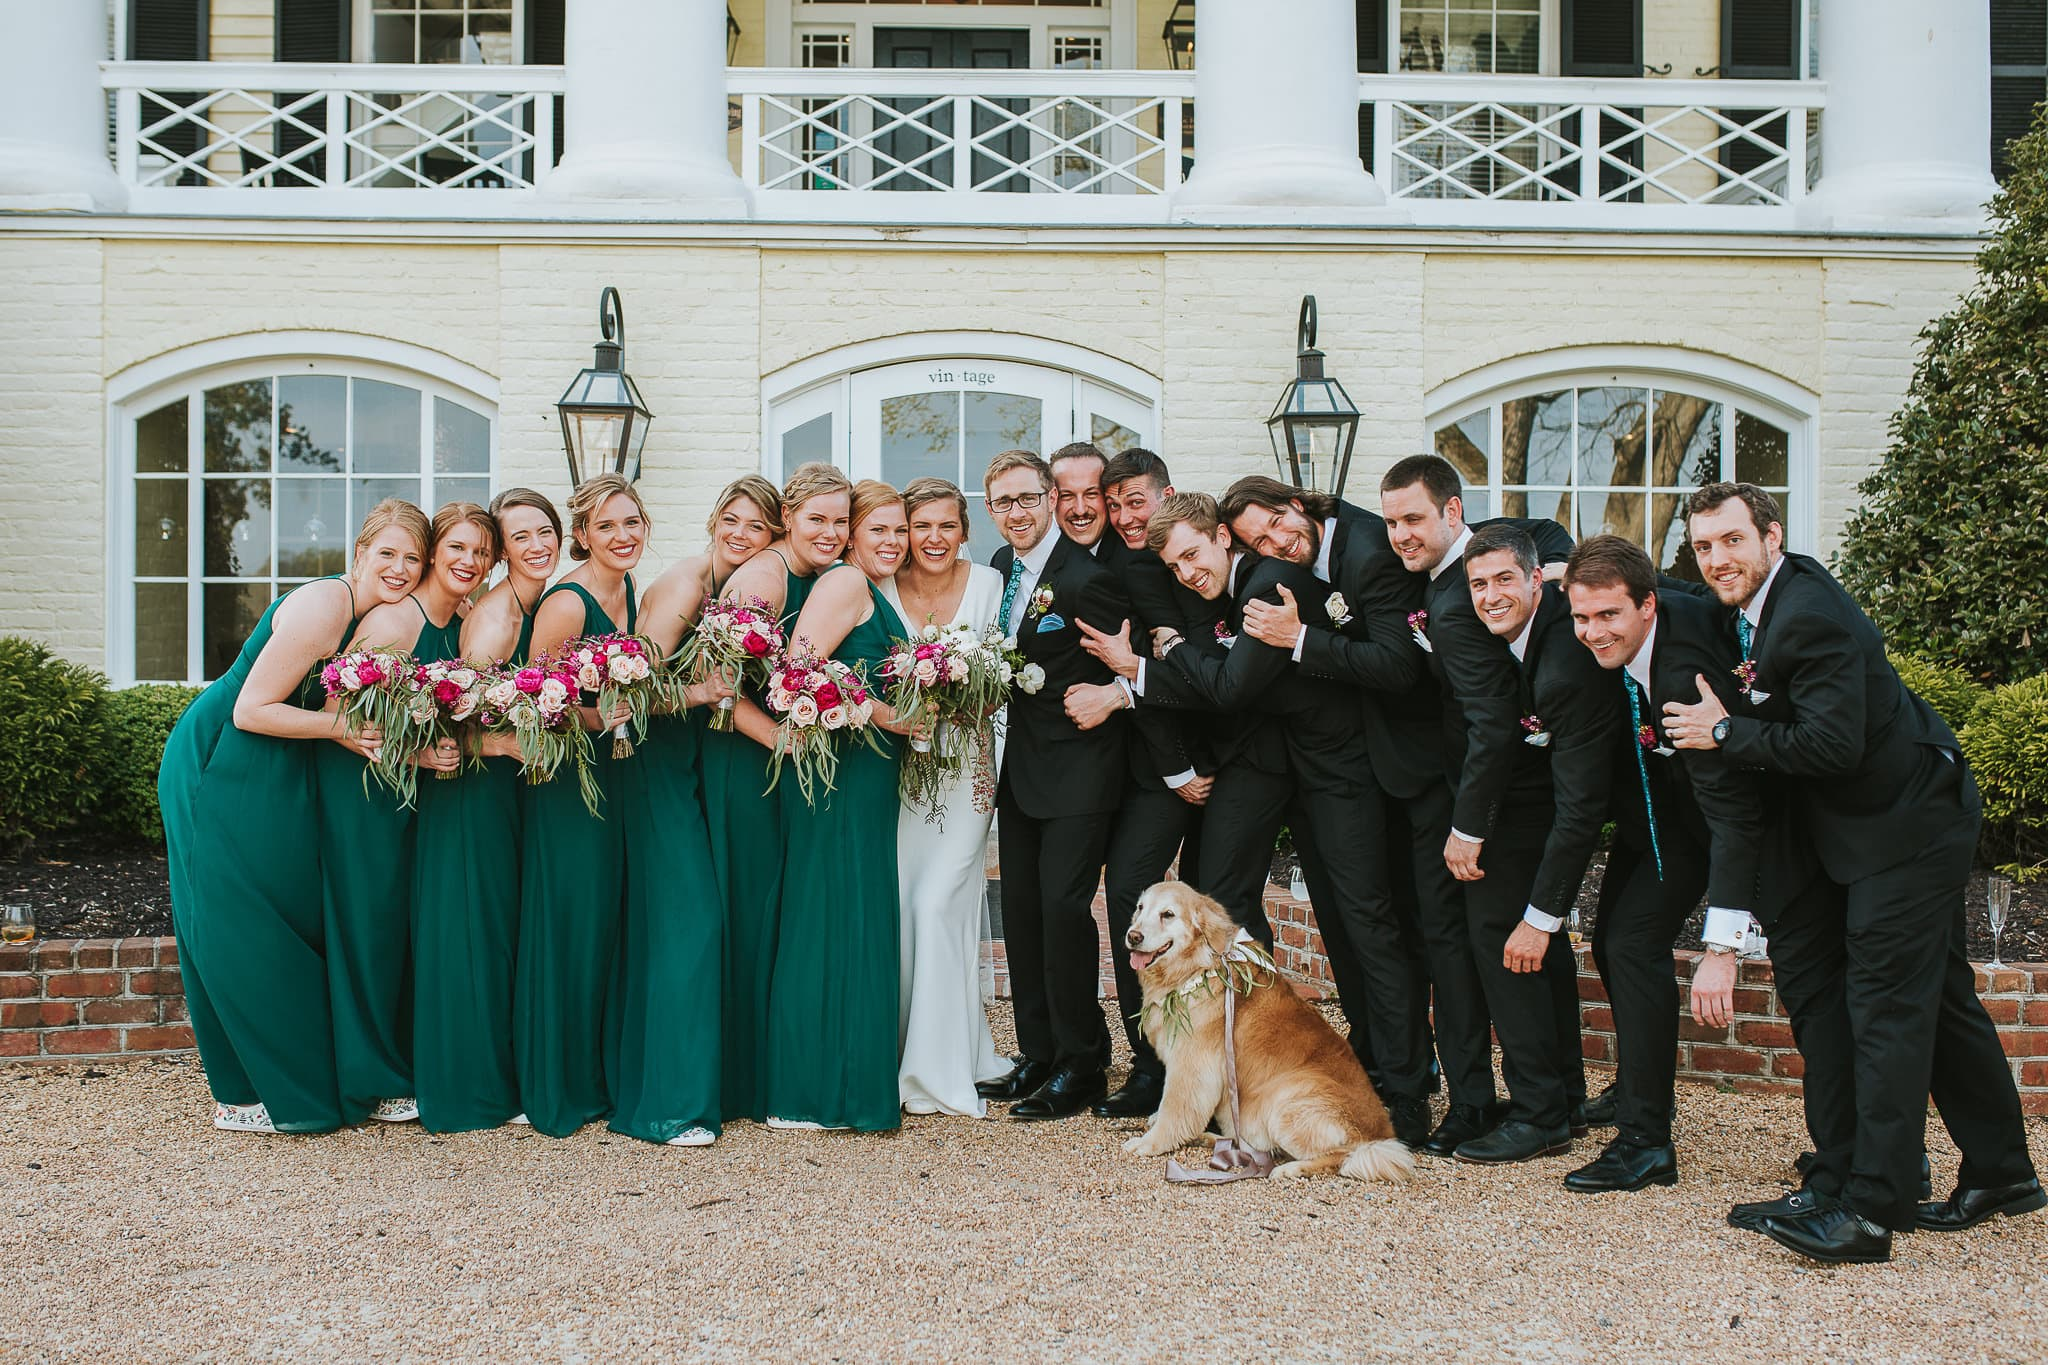 One of the only things I wanted out of a wedding photographer was not to feel like they were in our faces the entire day